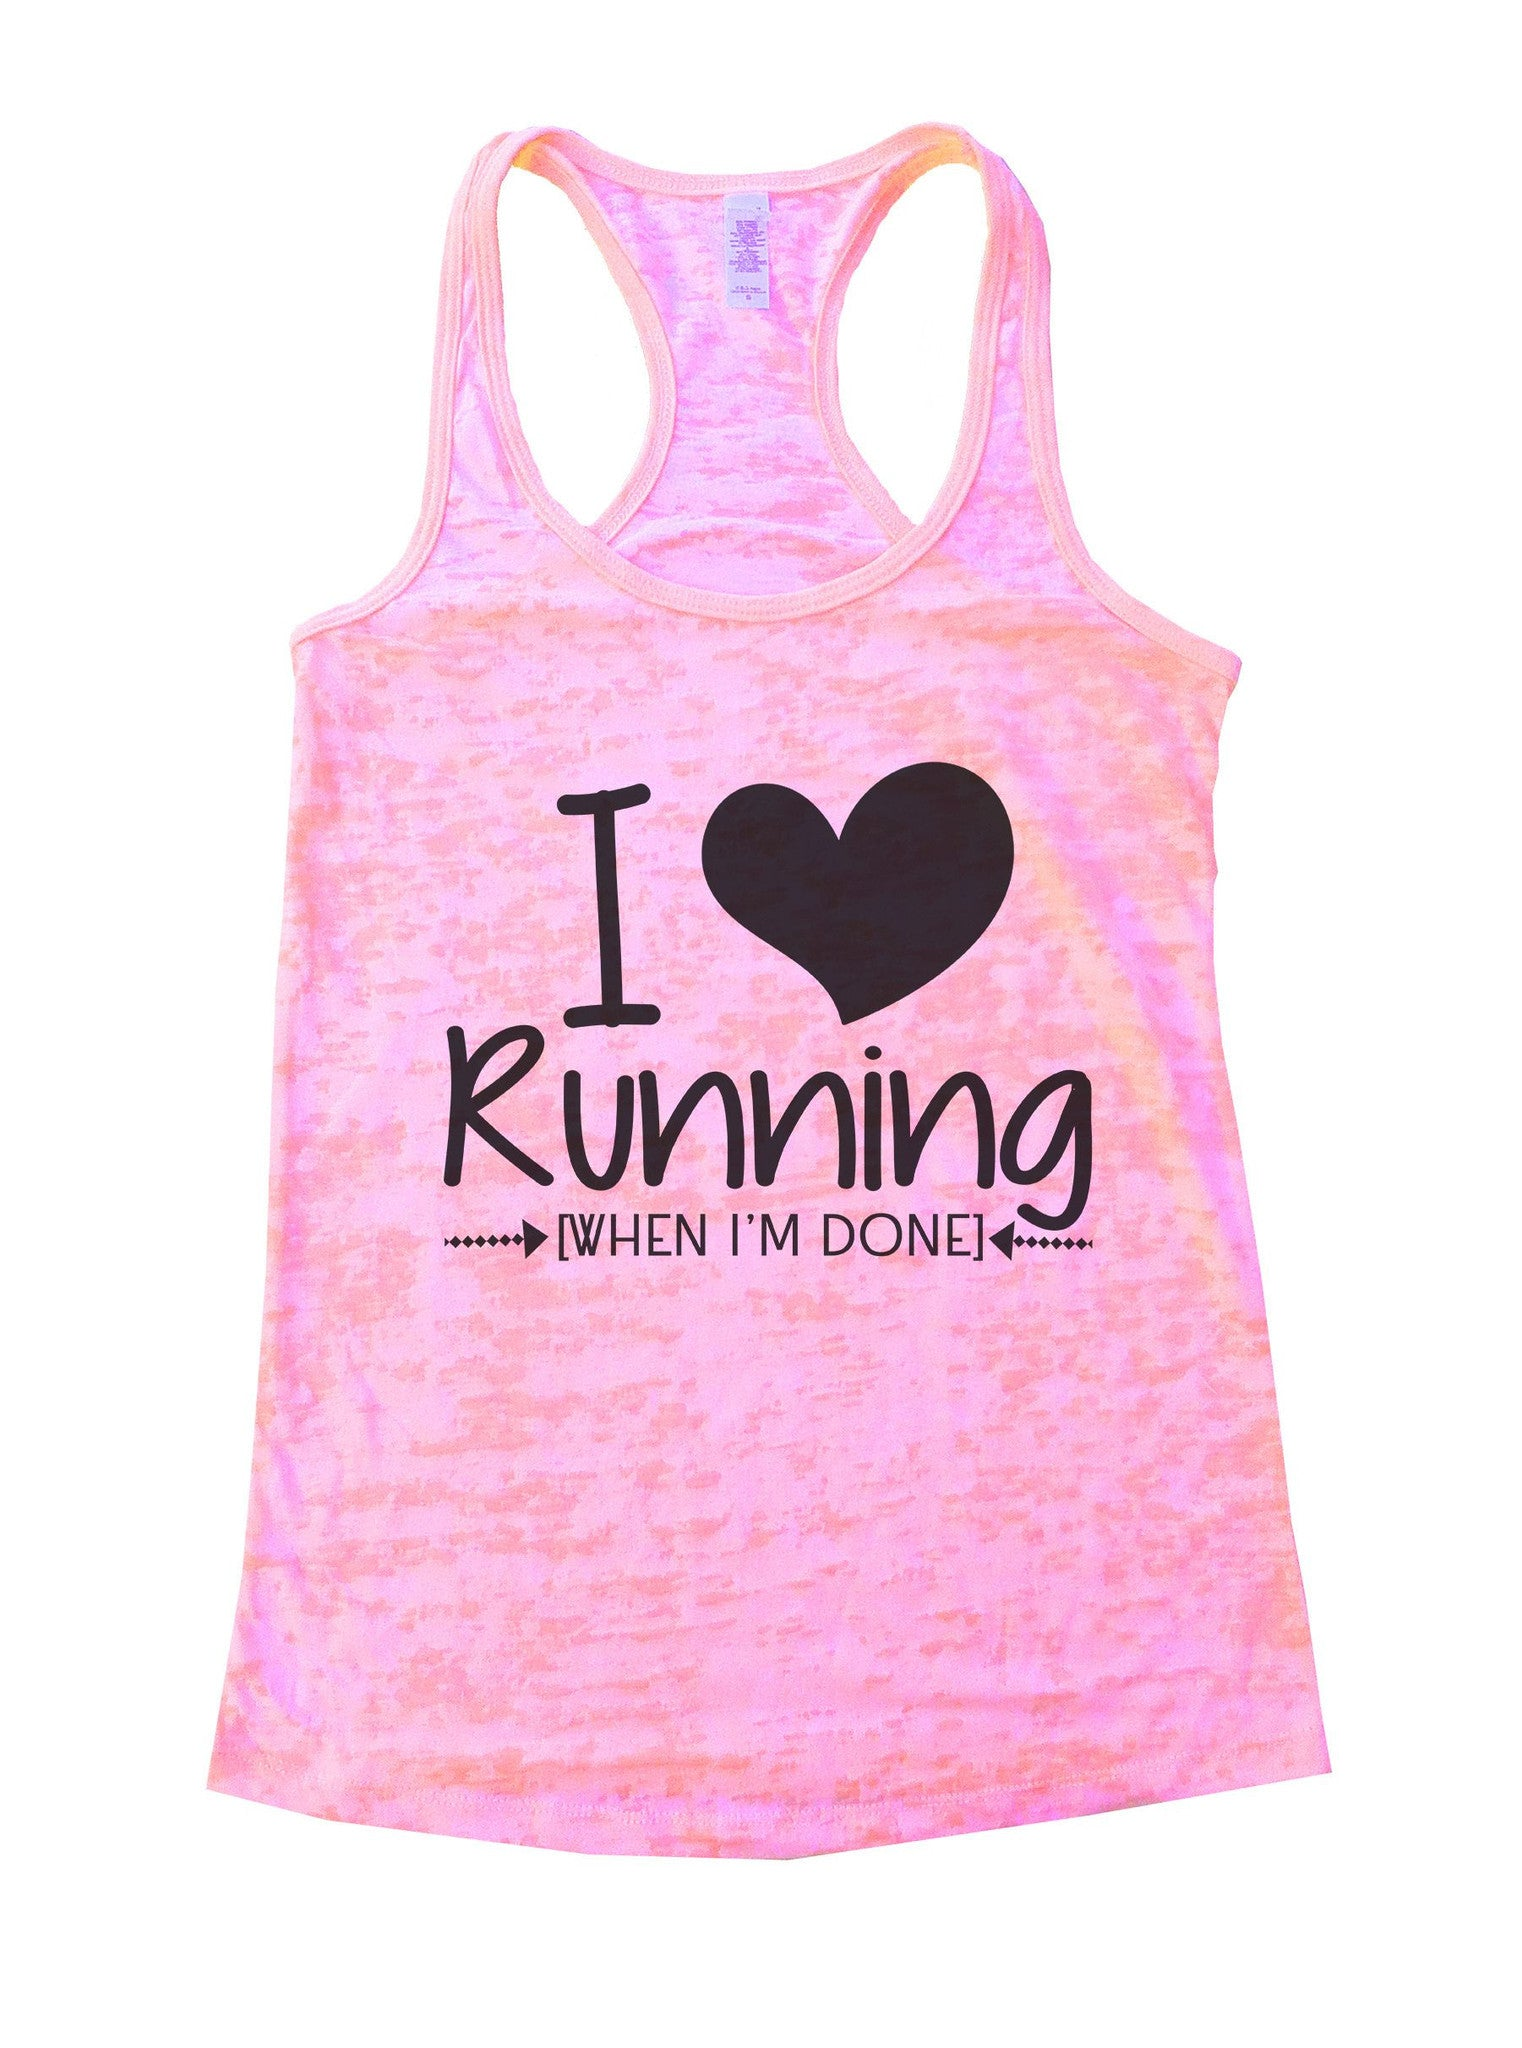 I Love Running [When I'm Done] Burnout Tank Top By BurnoutTankTops.com - 1013 - Funny Shirts Tank Tops Burnouts and Triblends  - 2